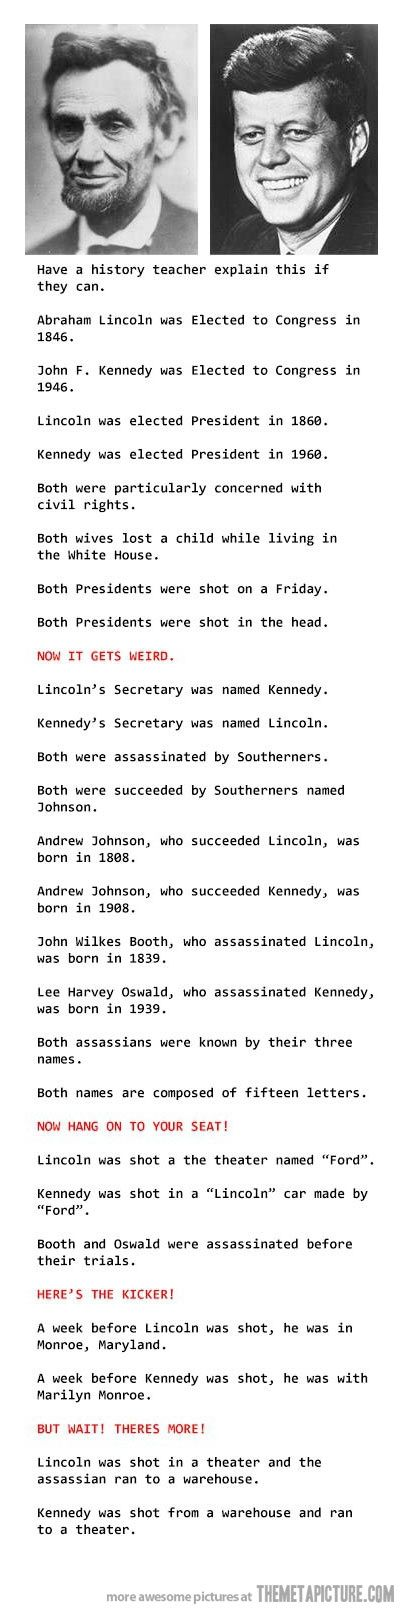 historical fun facts